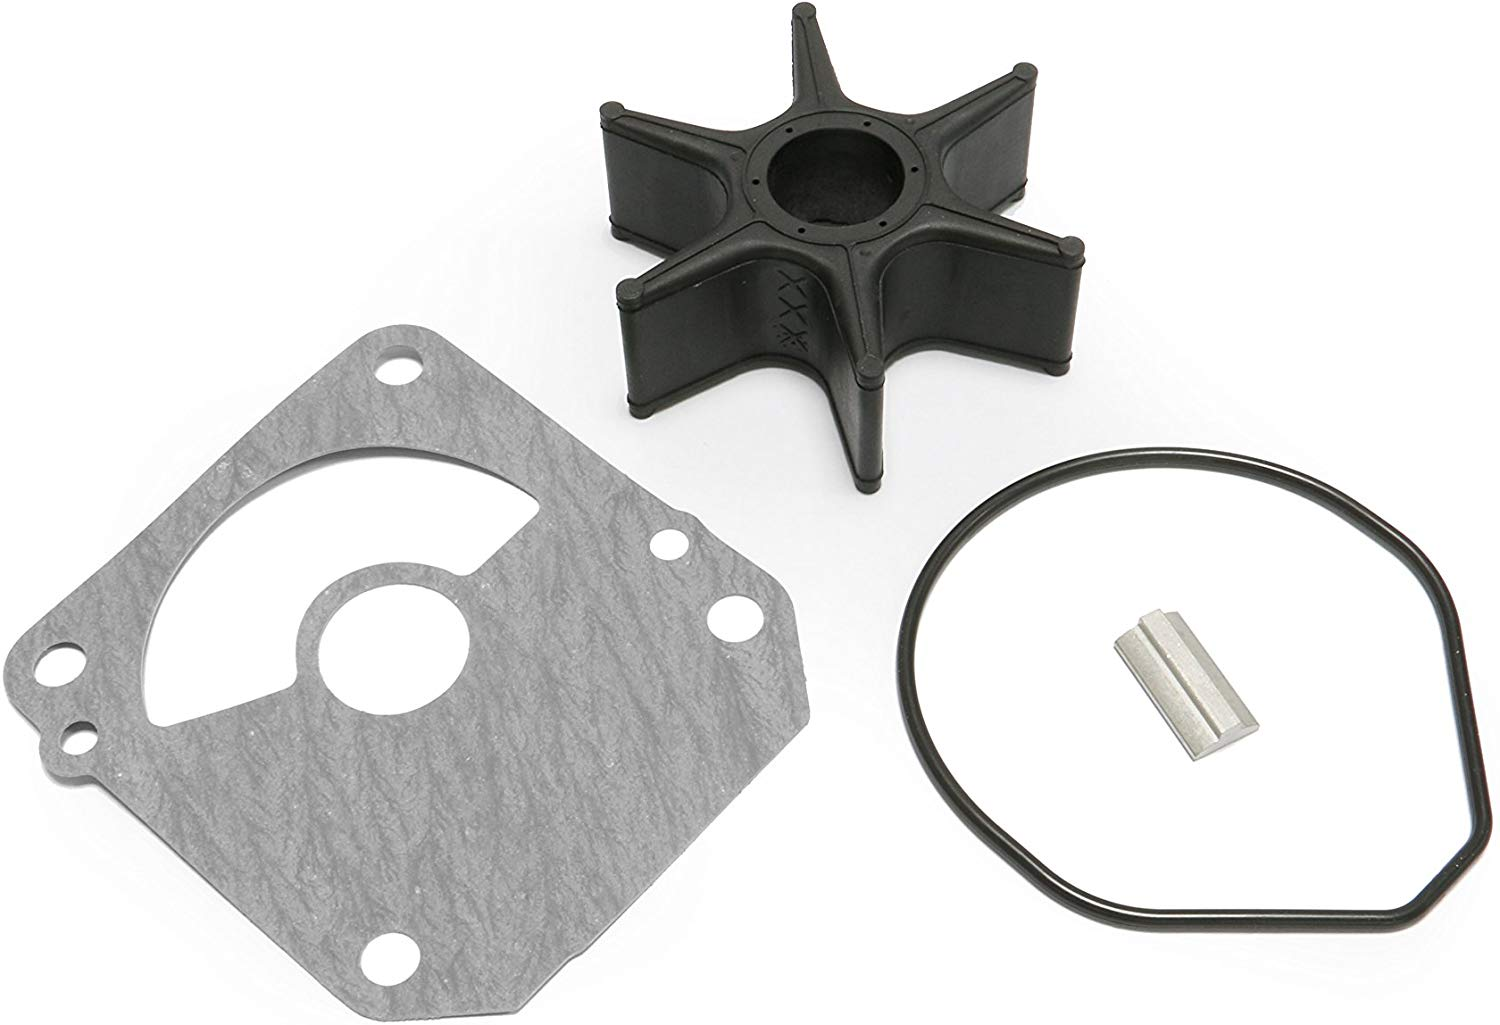 06192-ZW1-000 Water Pump Repair kits for Honda Outboard 75-130HP